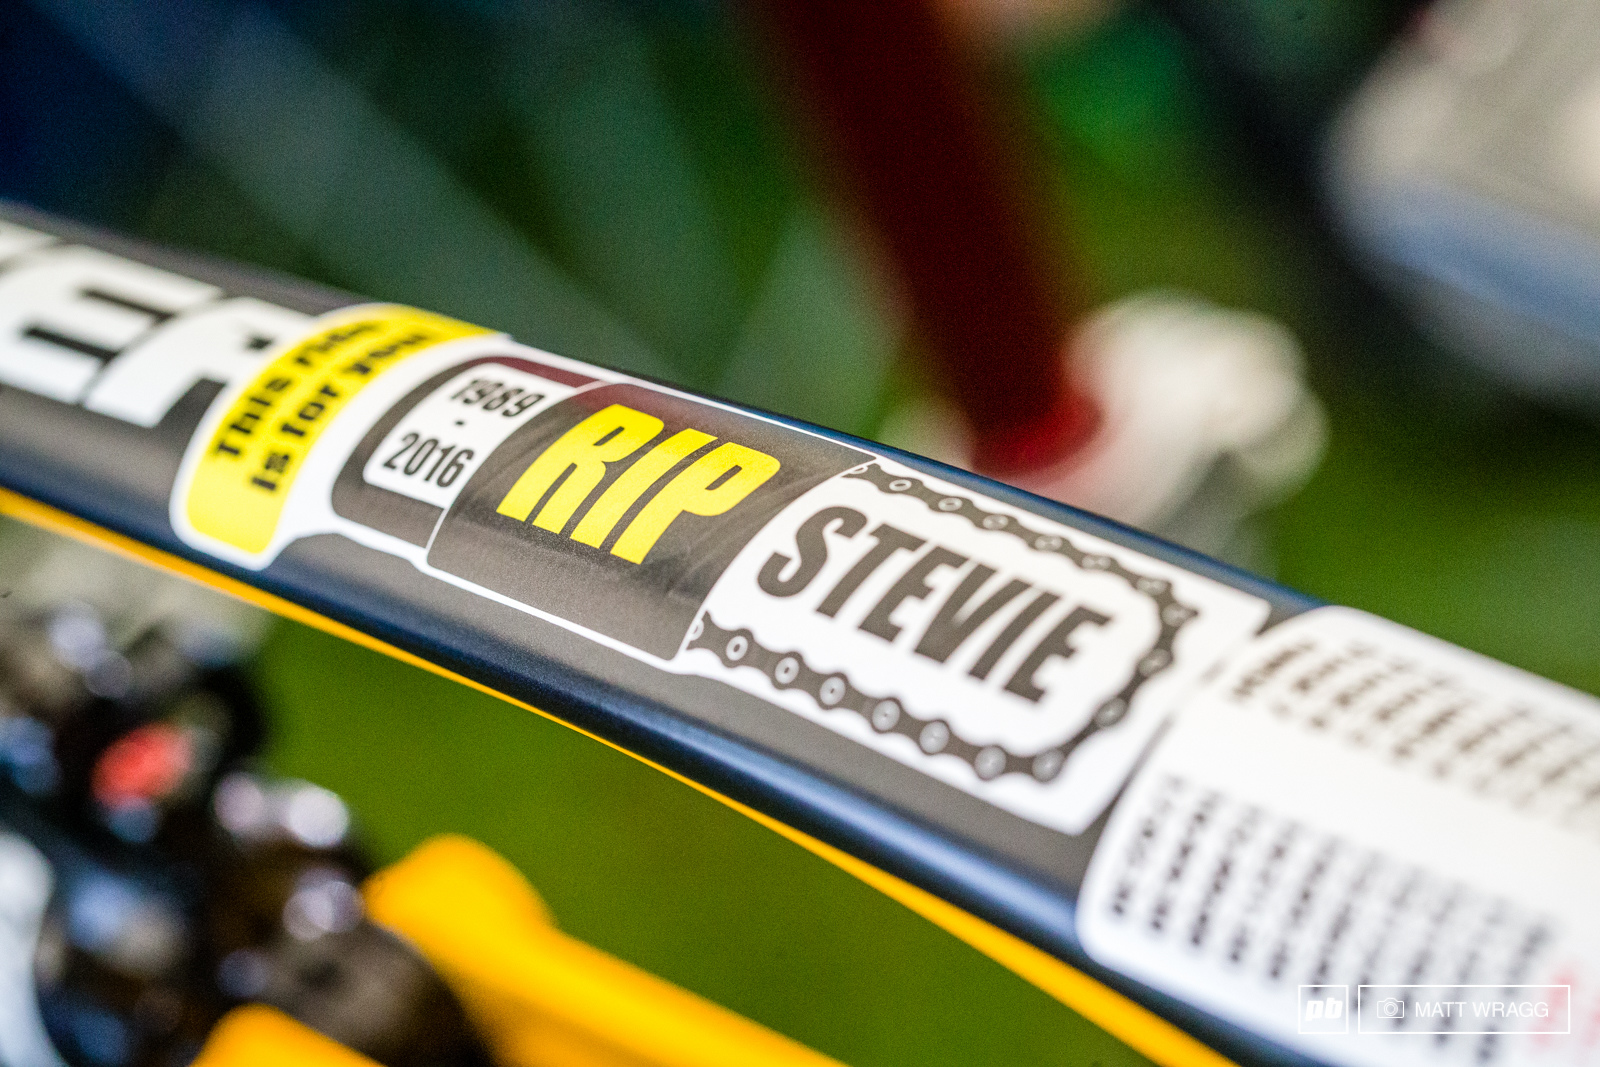 Sam Hill s toptube this weekend.